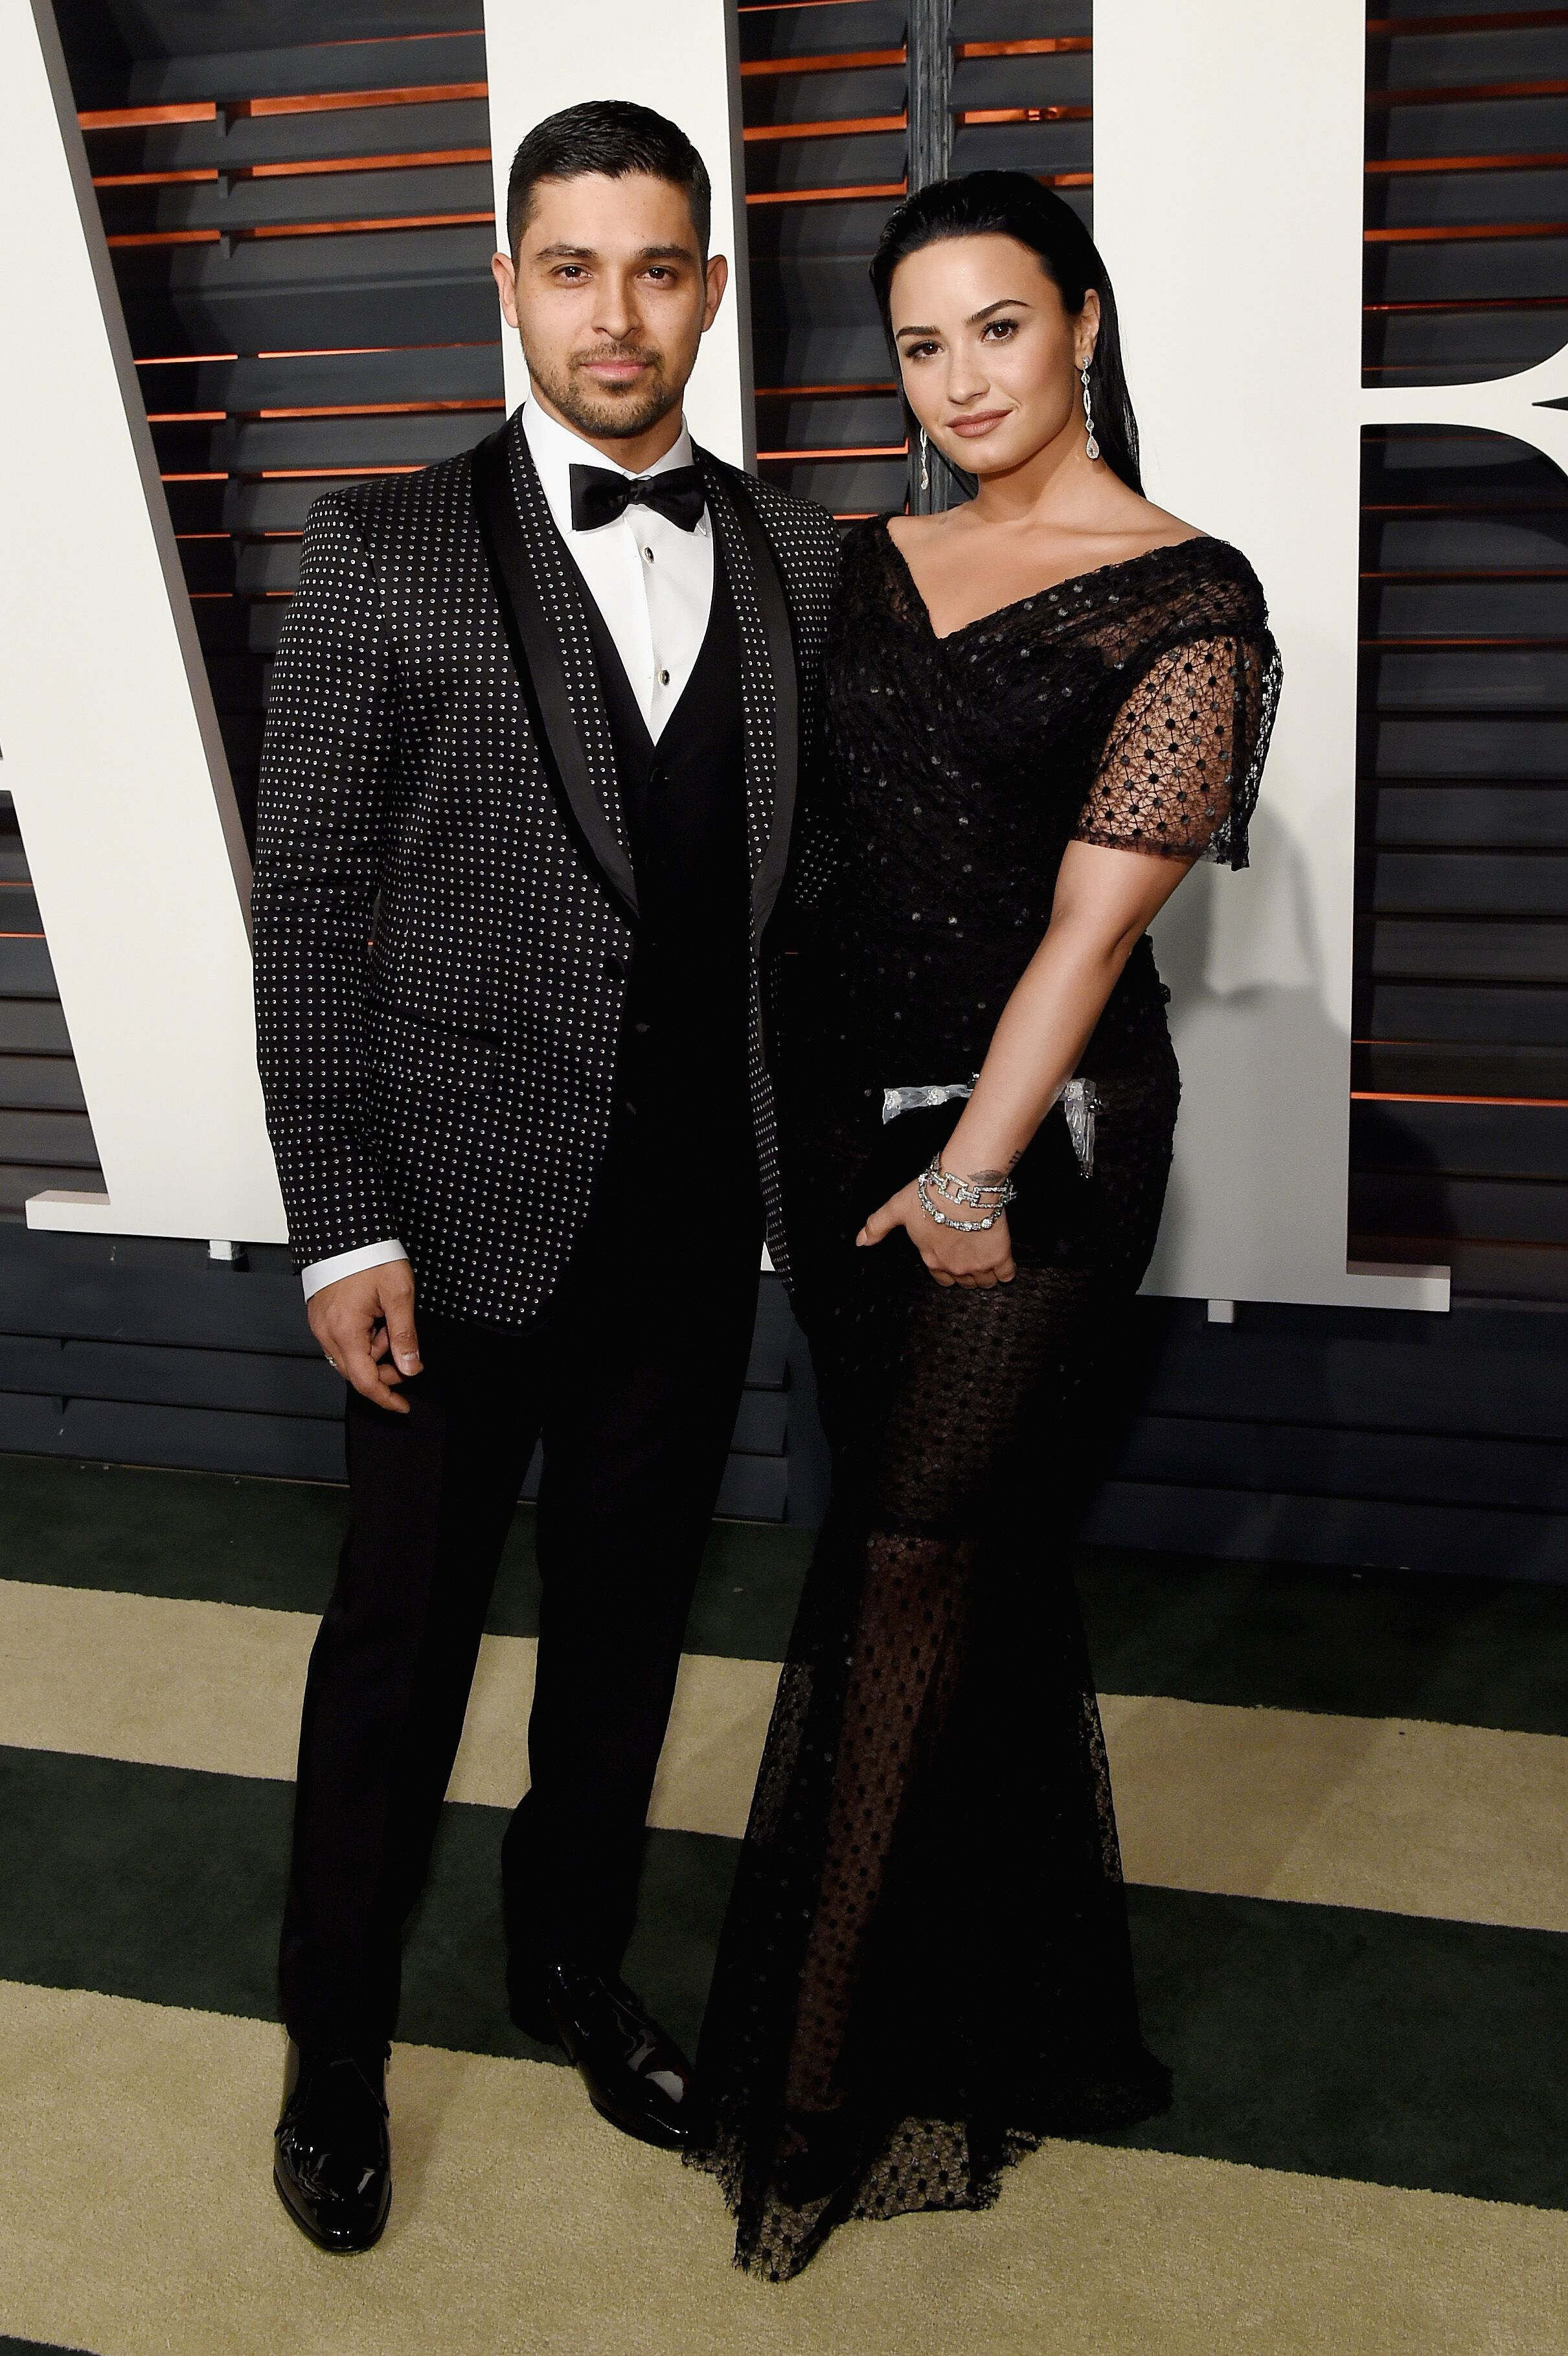 Wilmer Valderrama and Demi Lovato at the 2016 Vanity Fair Oscar Party | Source: Getty Images